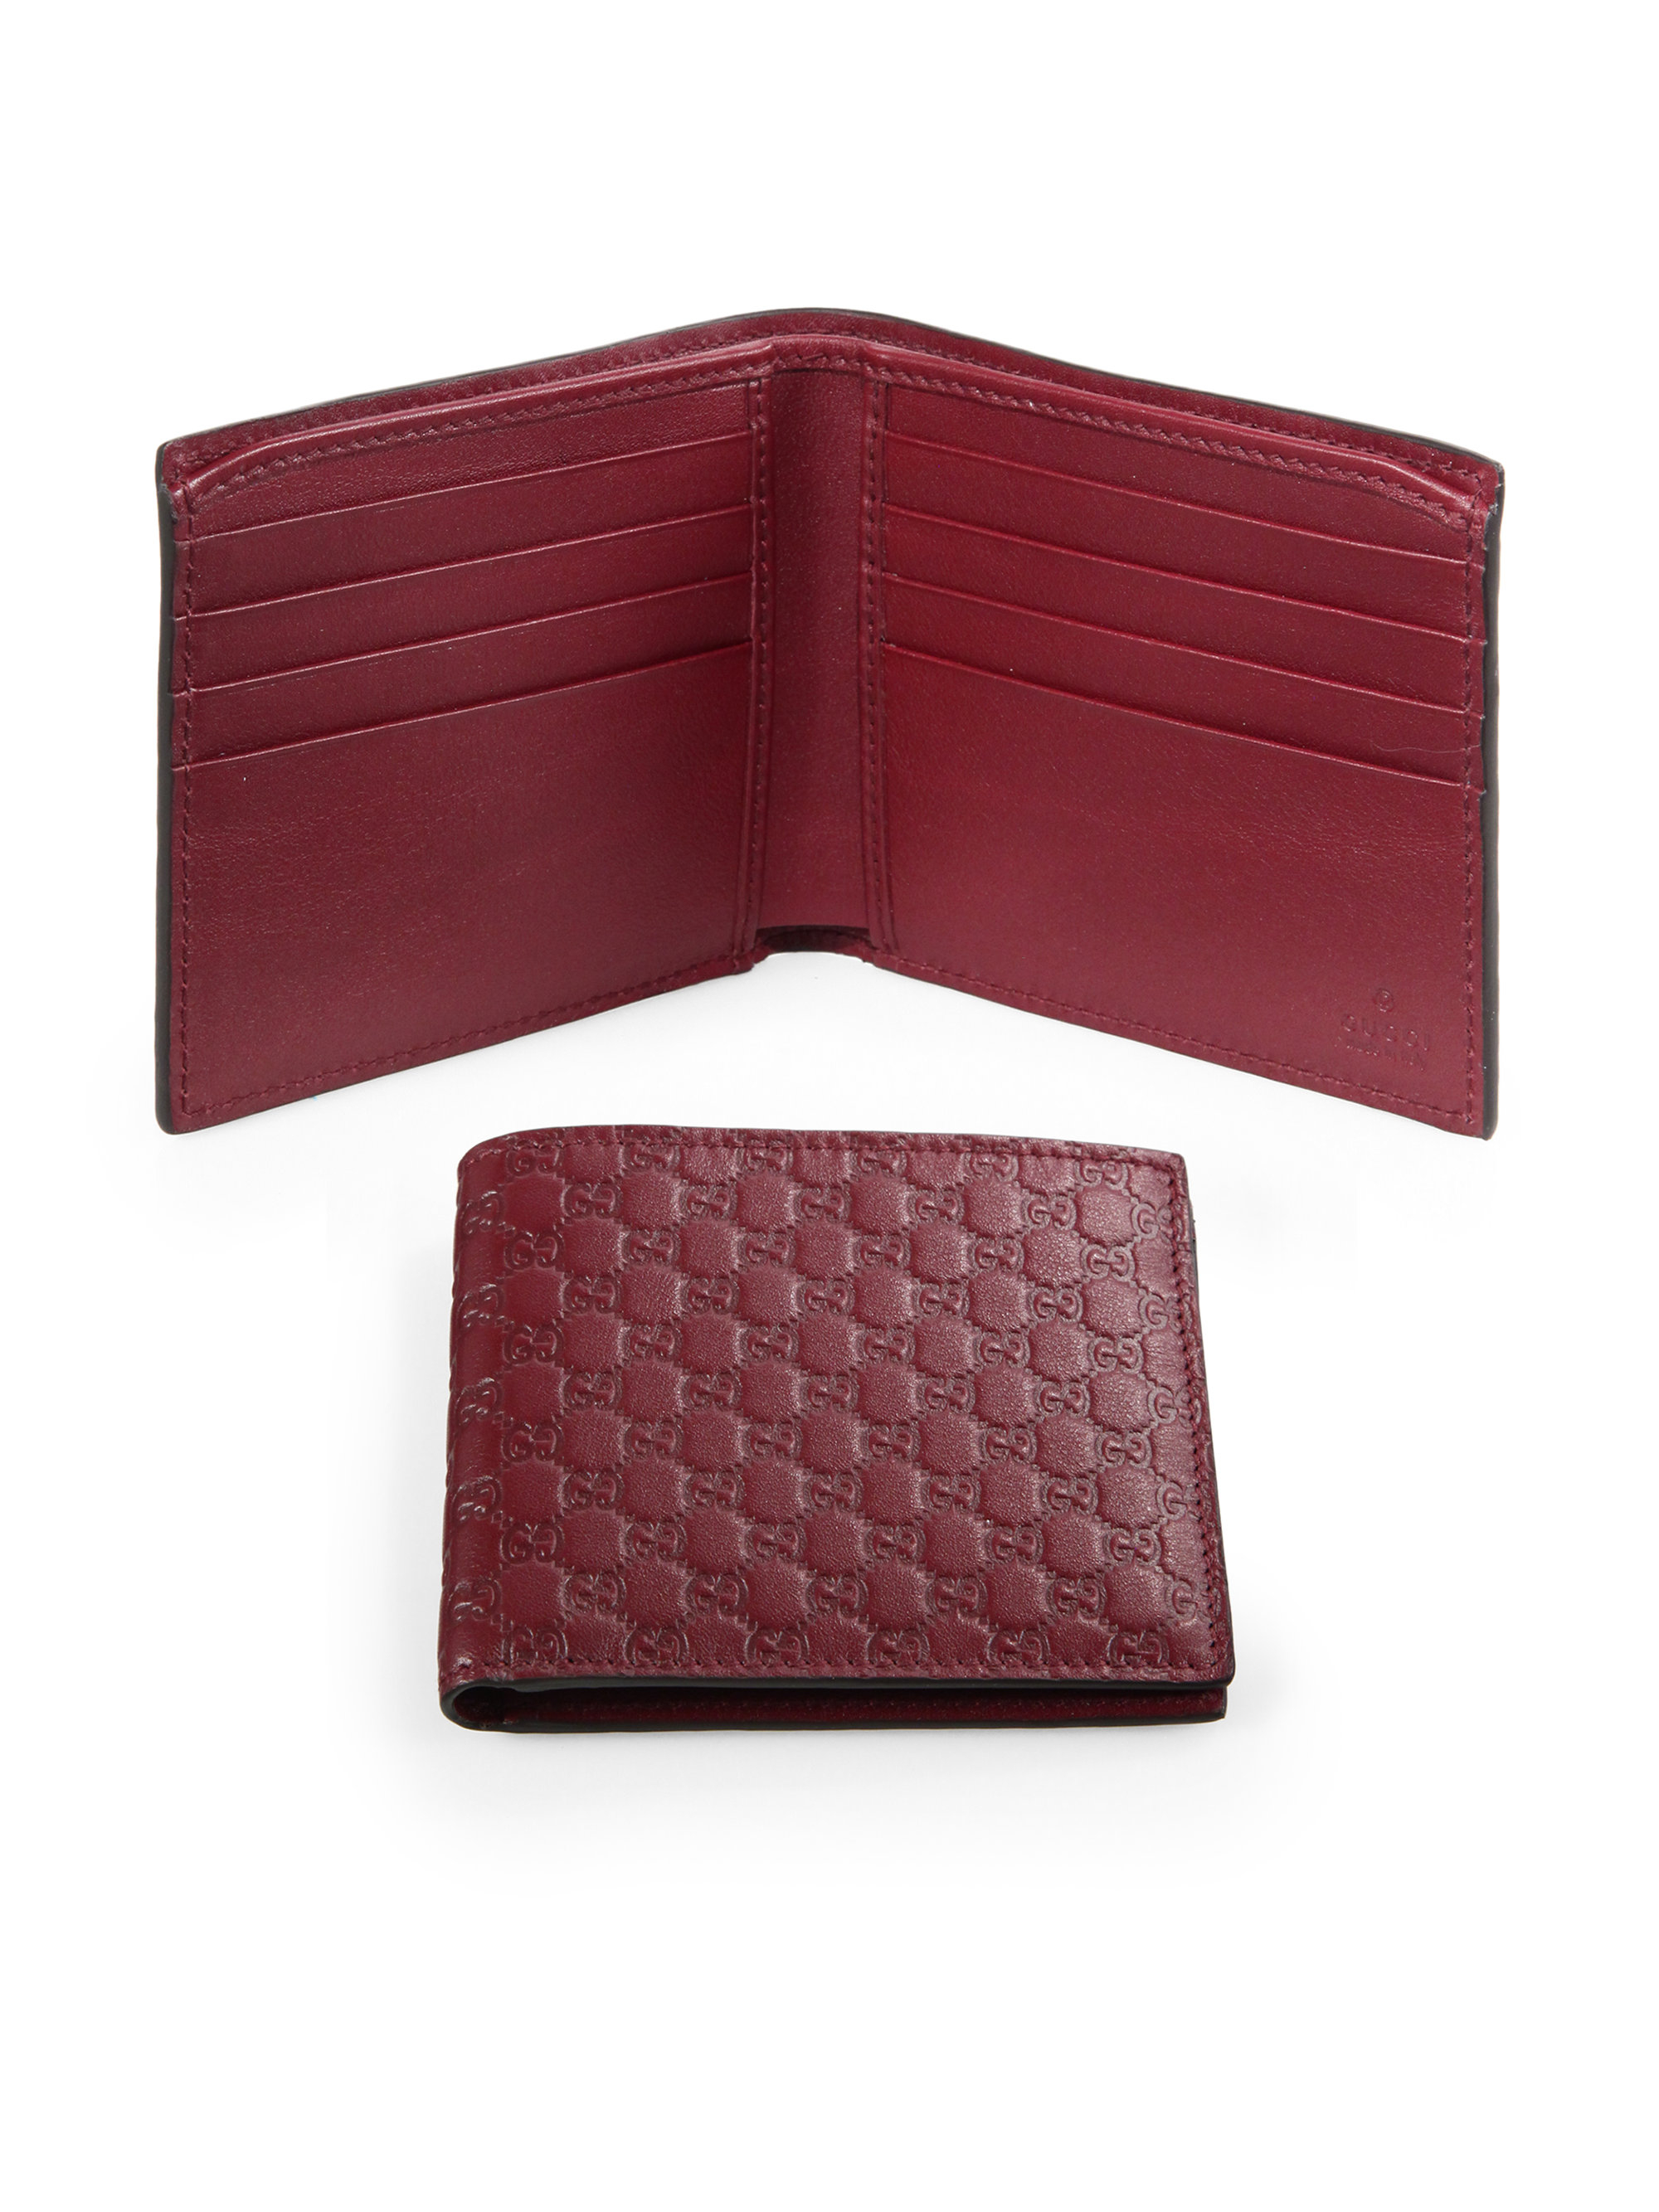 2ec82d9e172e Gucci Microssima Leather Wallet in Red for Men - Lyst